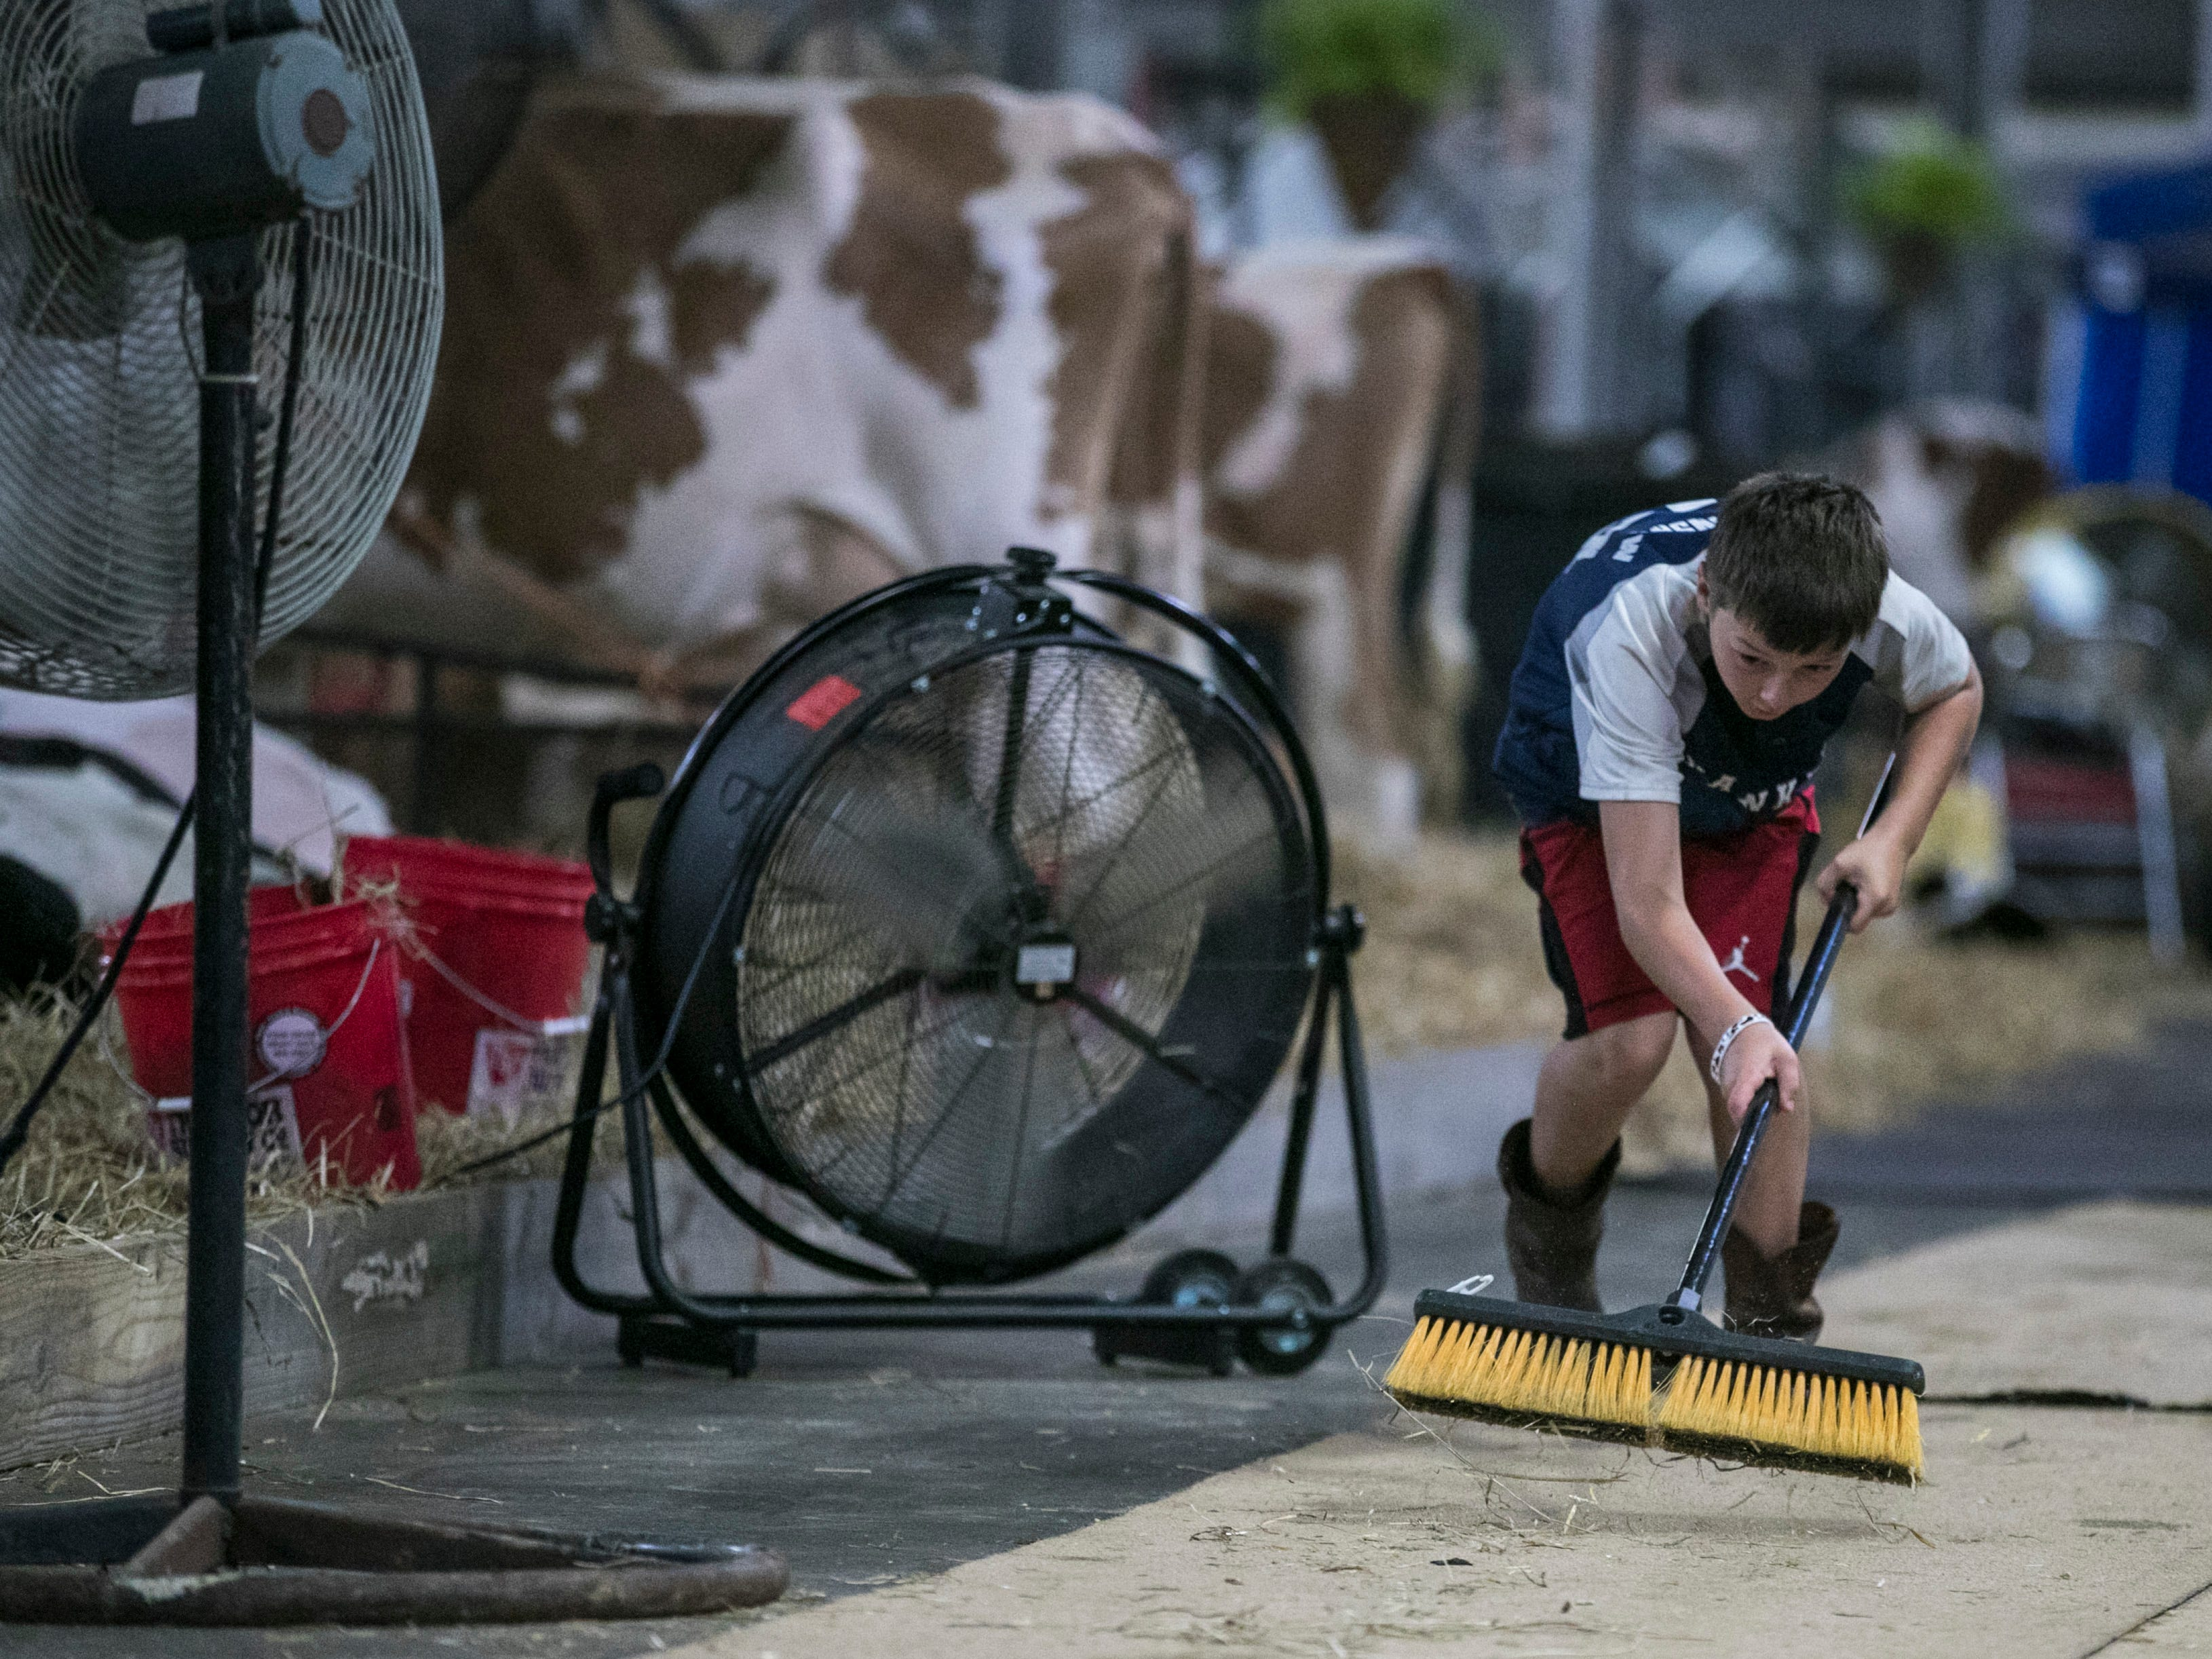 Andrew Henshaw of Grayson County, Kentucky keeps the walkway clear near his family's dairy cow stalls on the first day of the Kentucky State Fair.